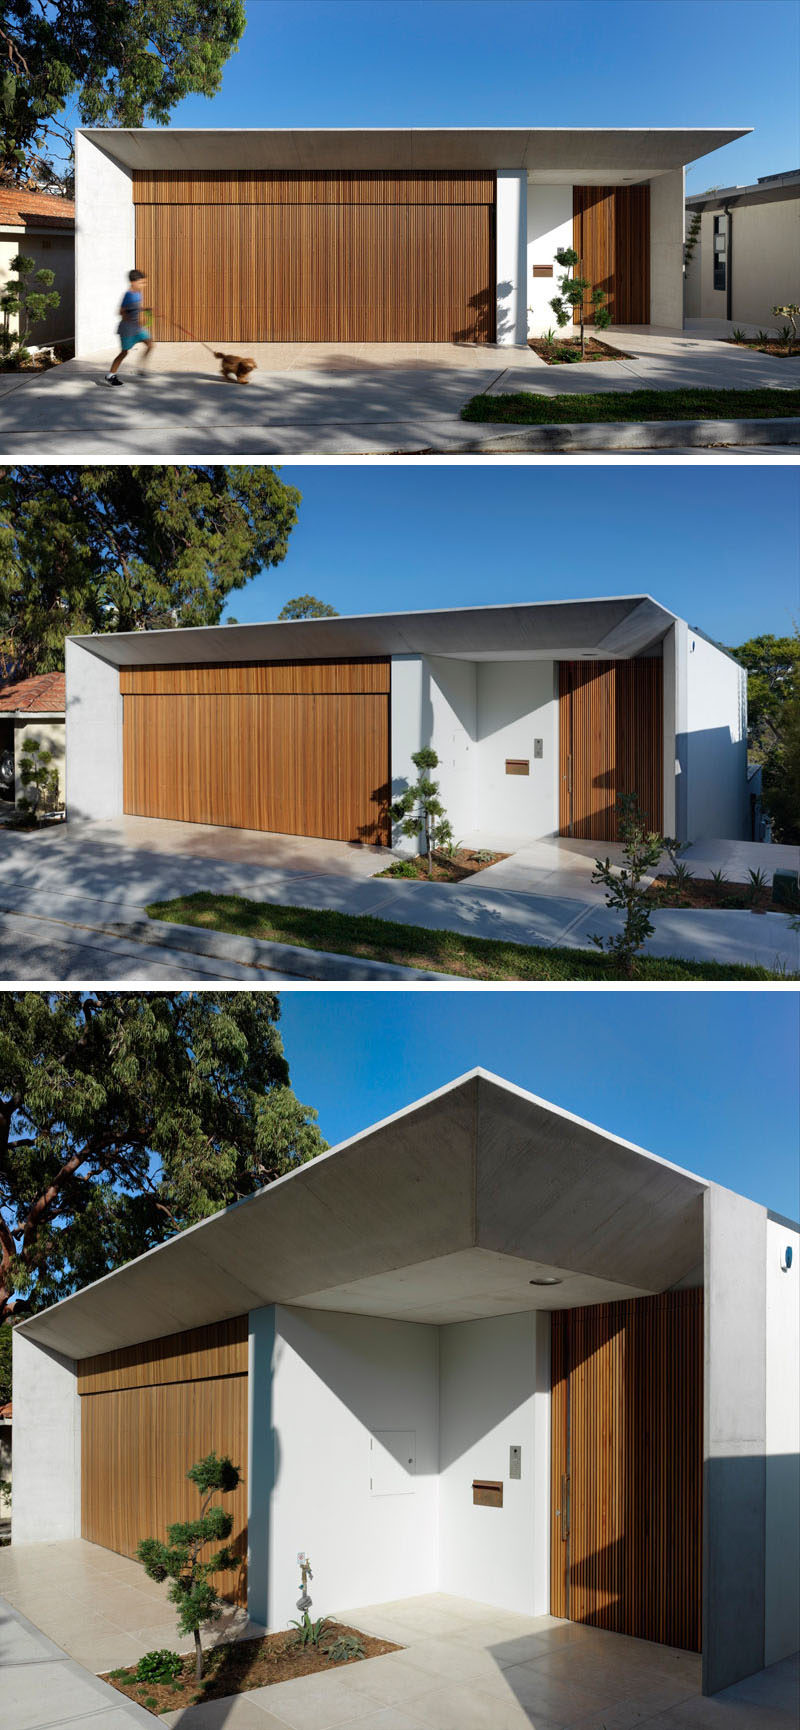 From the street, this modern house has a wood garage that matches the front door. The front door has been slightly set back to provide some protection from the elements.